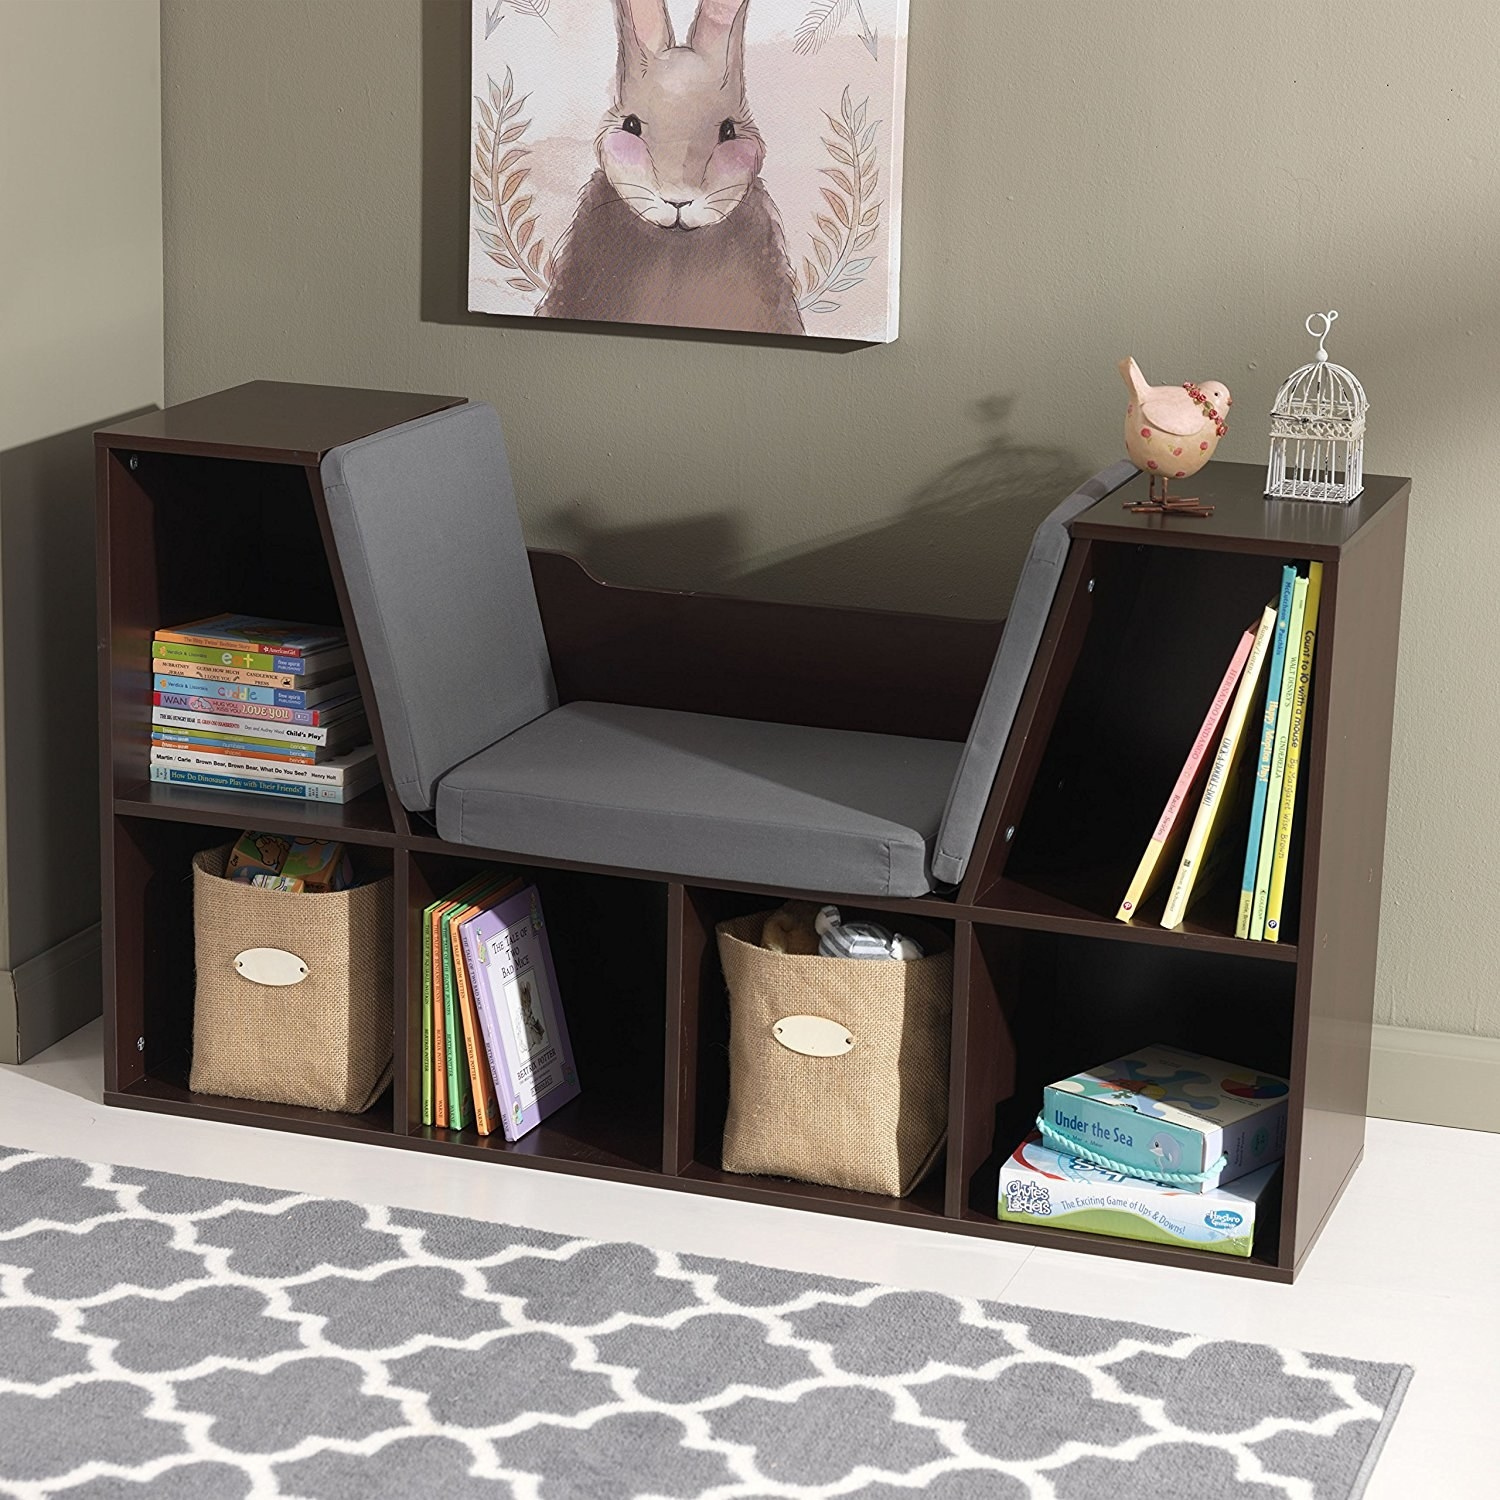 29 Ways To Create The Reading Nook Of Your Dreams